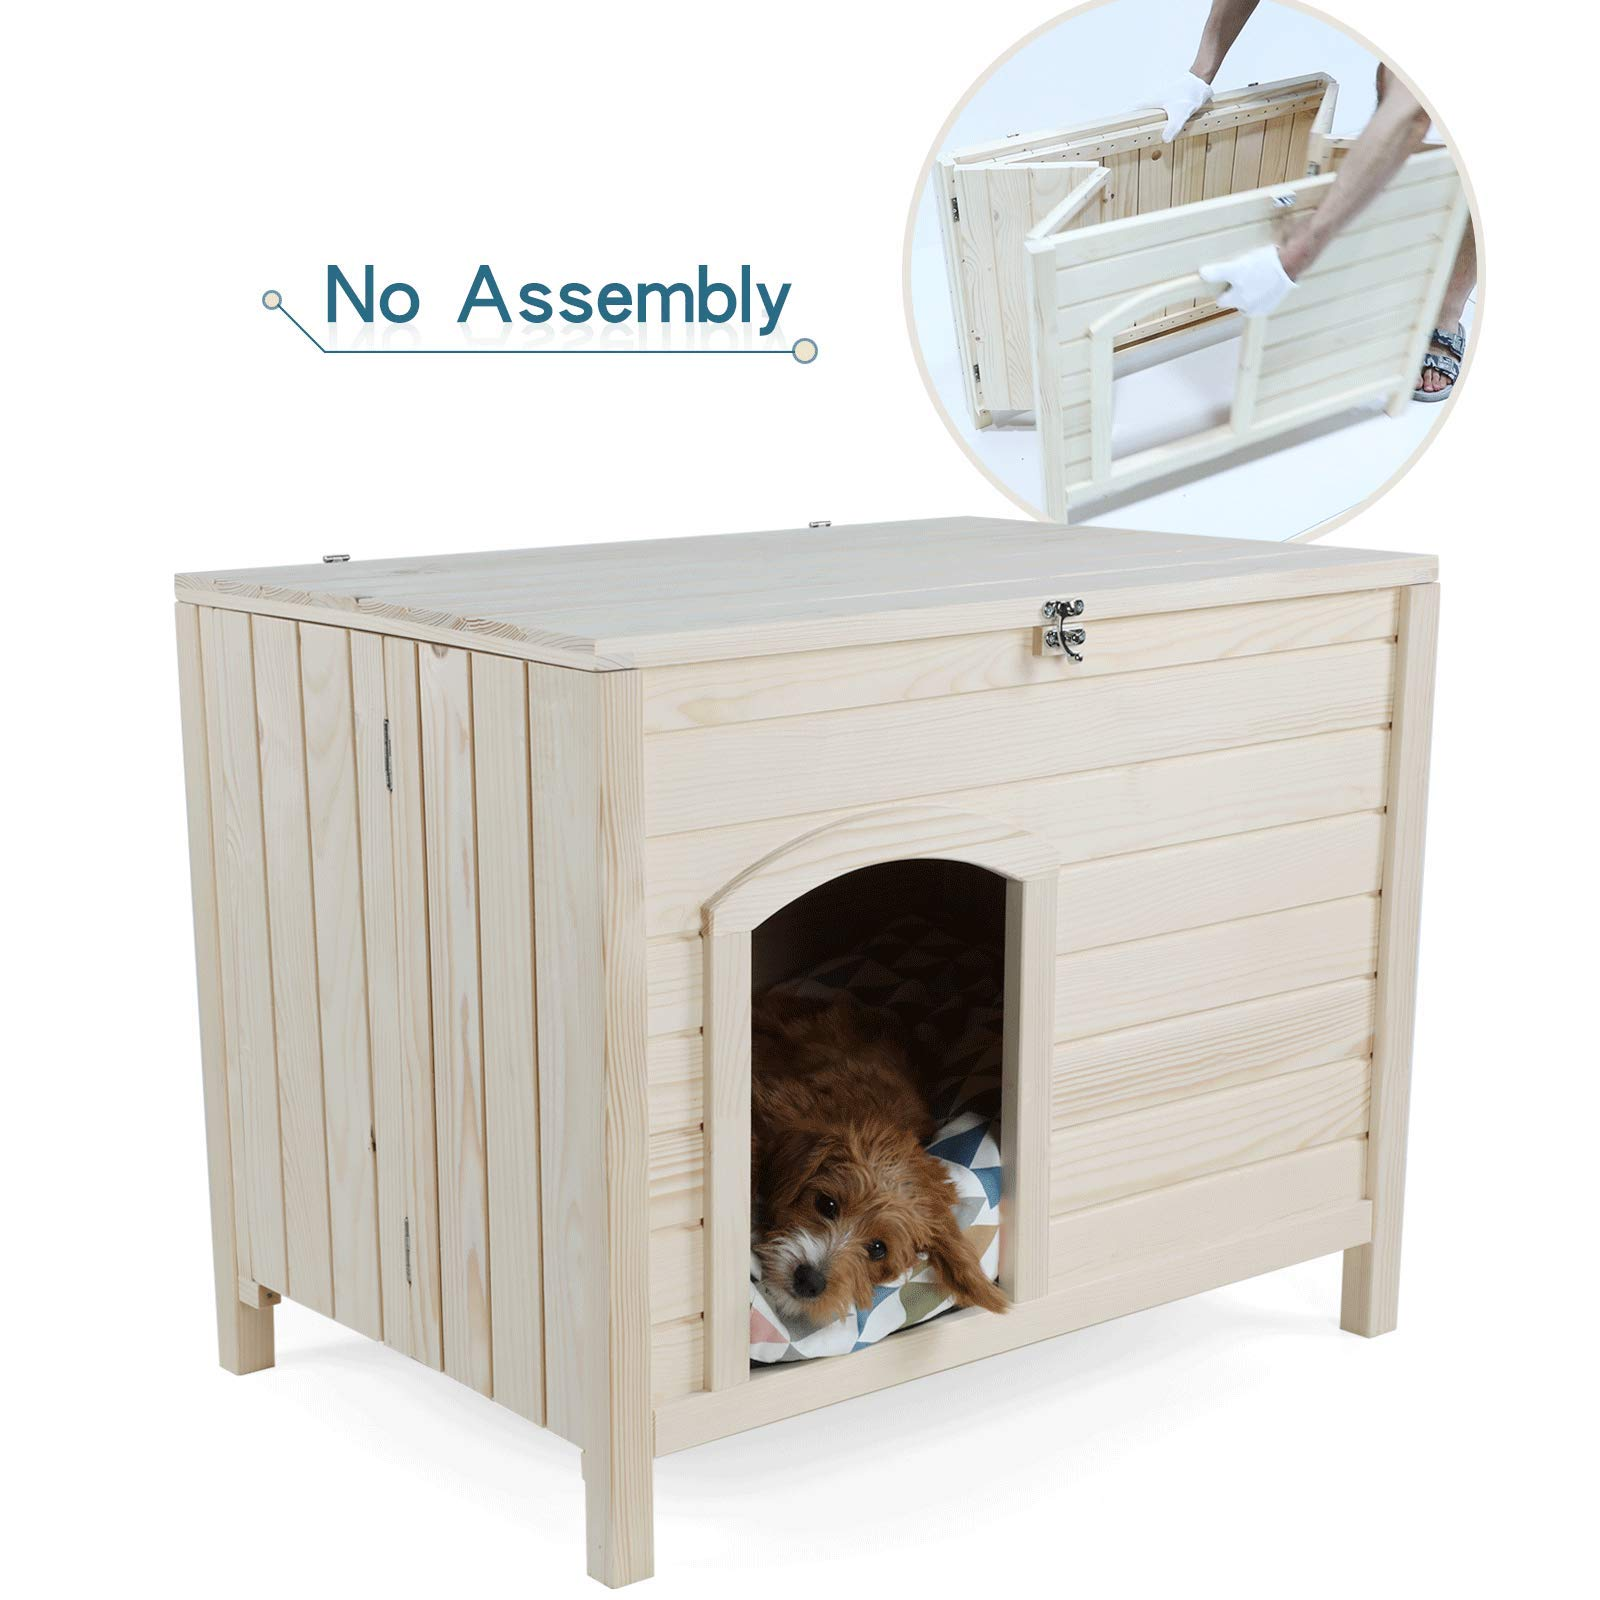 Petsfit No Assembly Portable Wooden Dog House, 1-Year Warranty